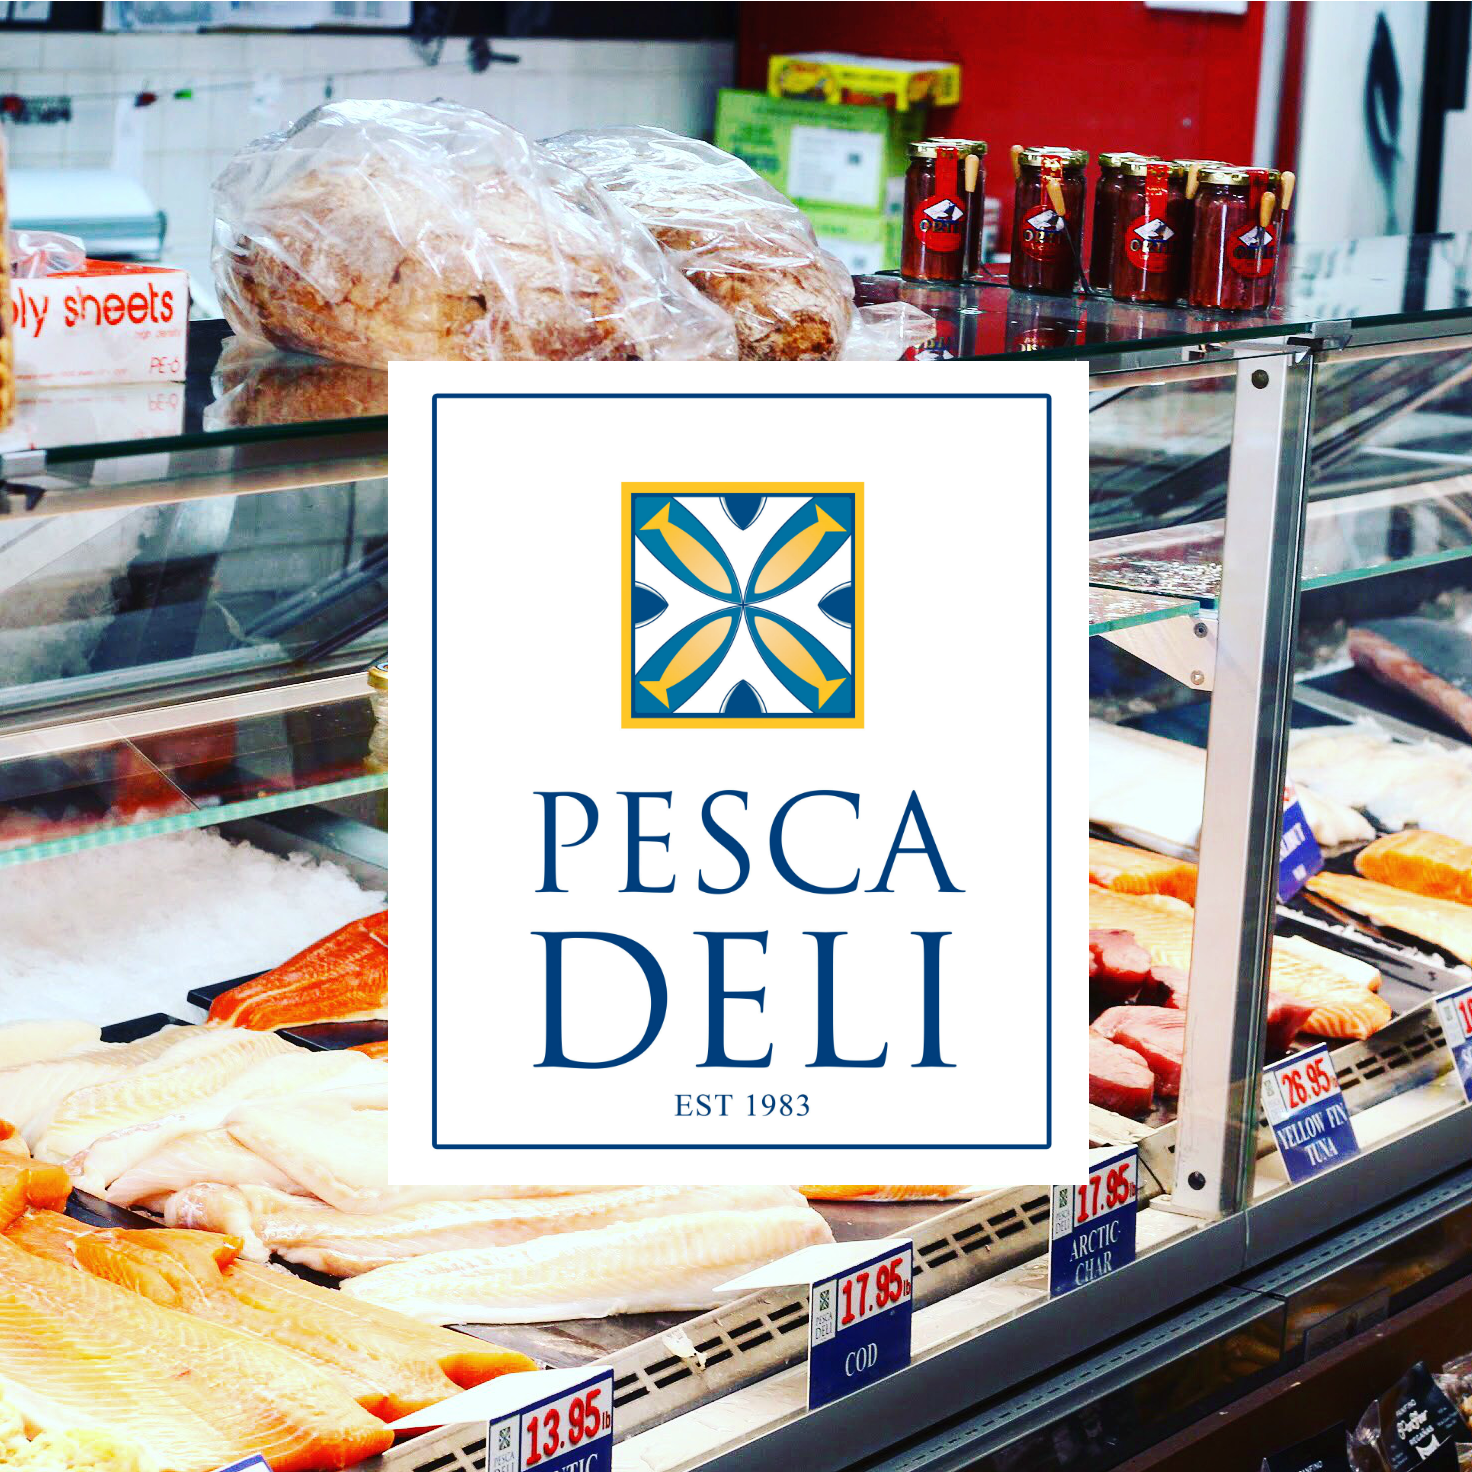 VIsit our sister storePescadeli - Pescadeli is located across the street from Butchers Alley. Pescadeli is a destination for fresh fish, seafood, house made daily bistro meals, catering and Spanish food favorites.301-841-8151www.pescadeli.com